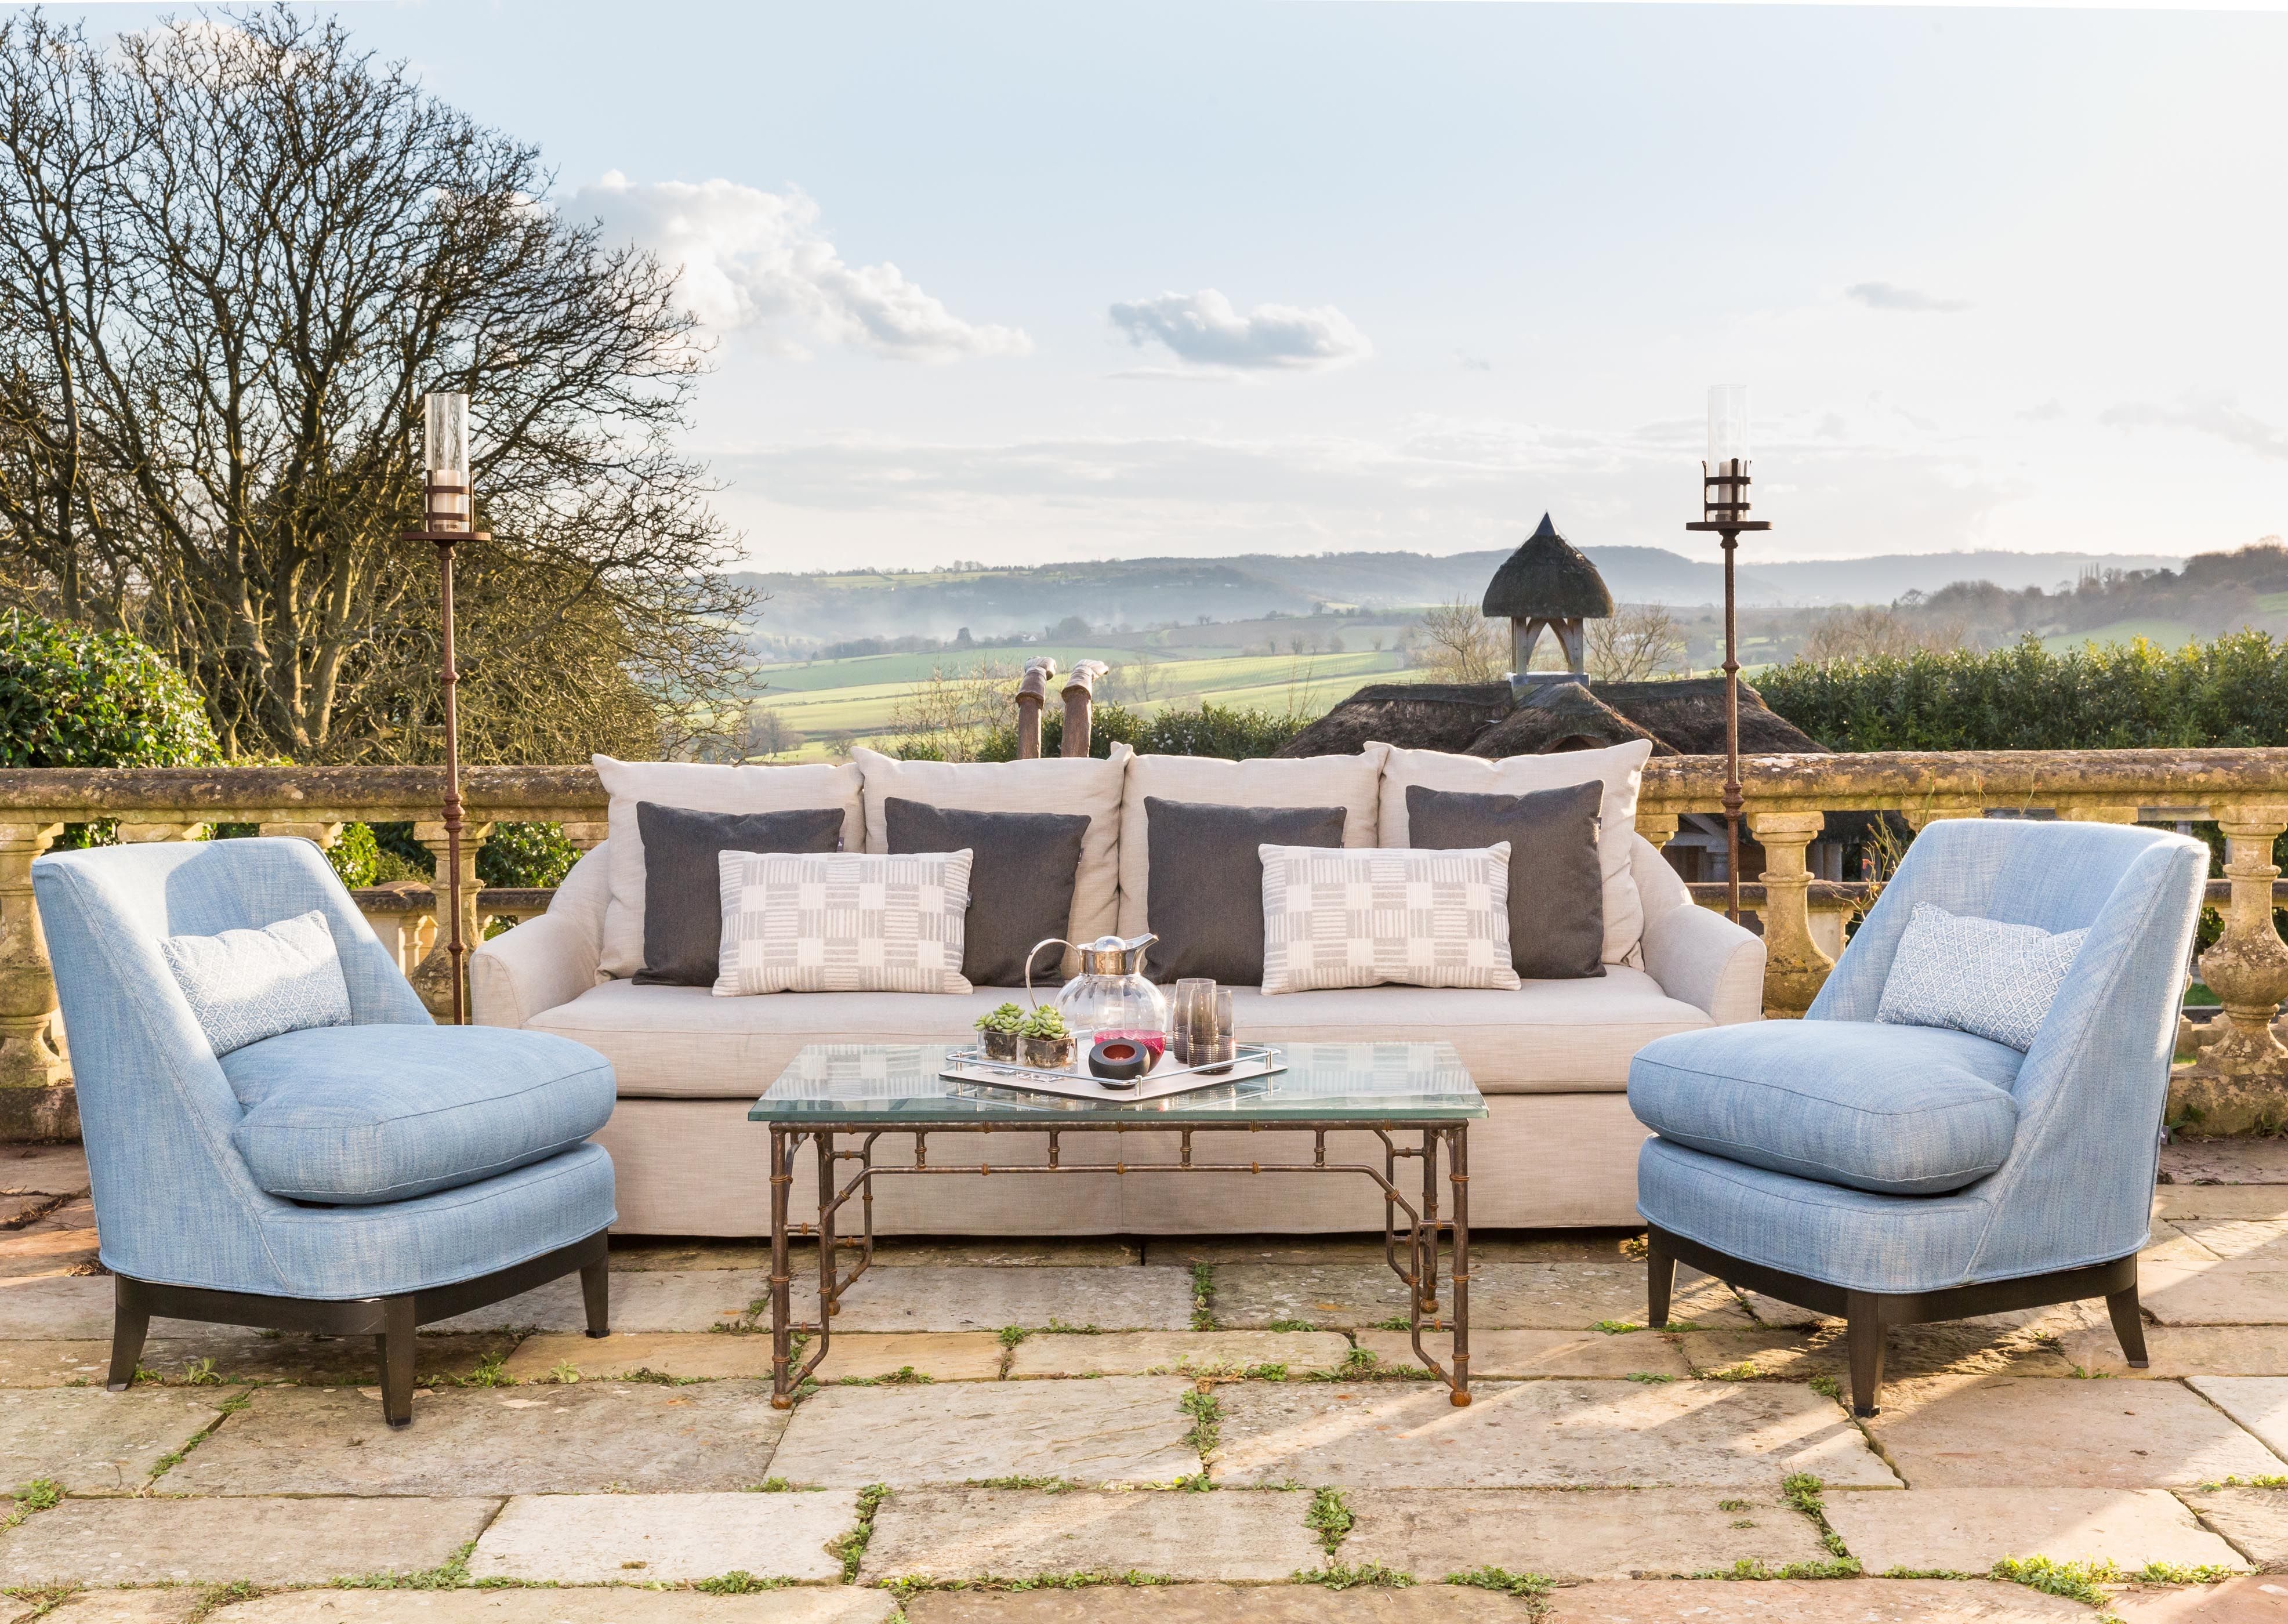 Ordinaire Coco Wolf Luxury Outdoor Furniture Chairs With Cushions. Outdoor Sofa With  Layered Cushions Add Colour